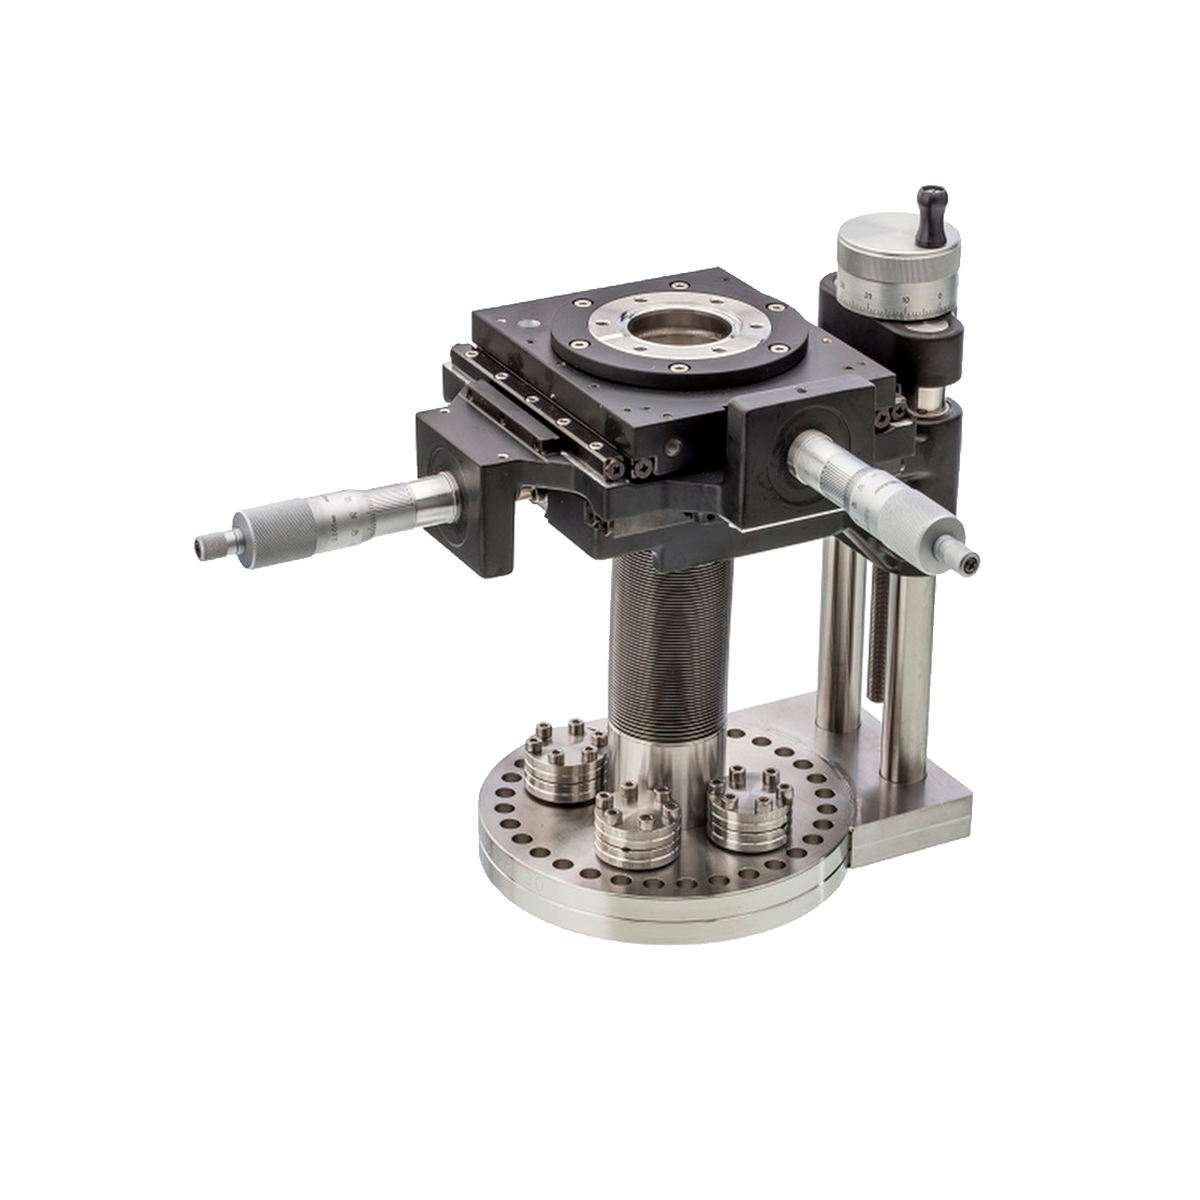 Optical lens manipulators